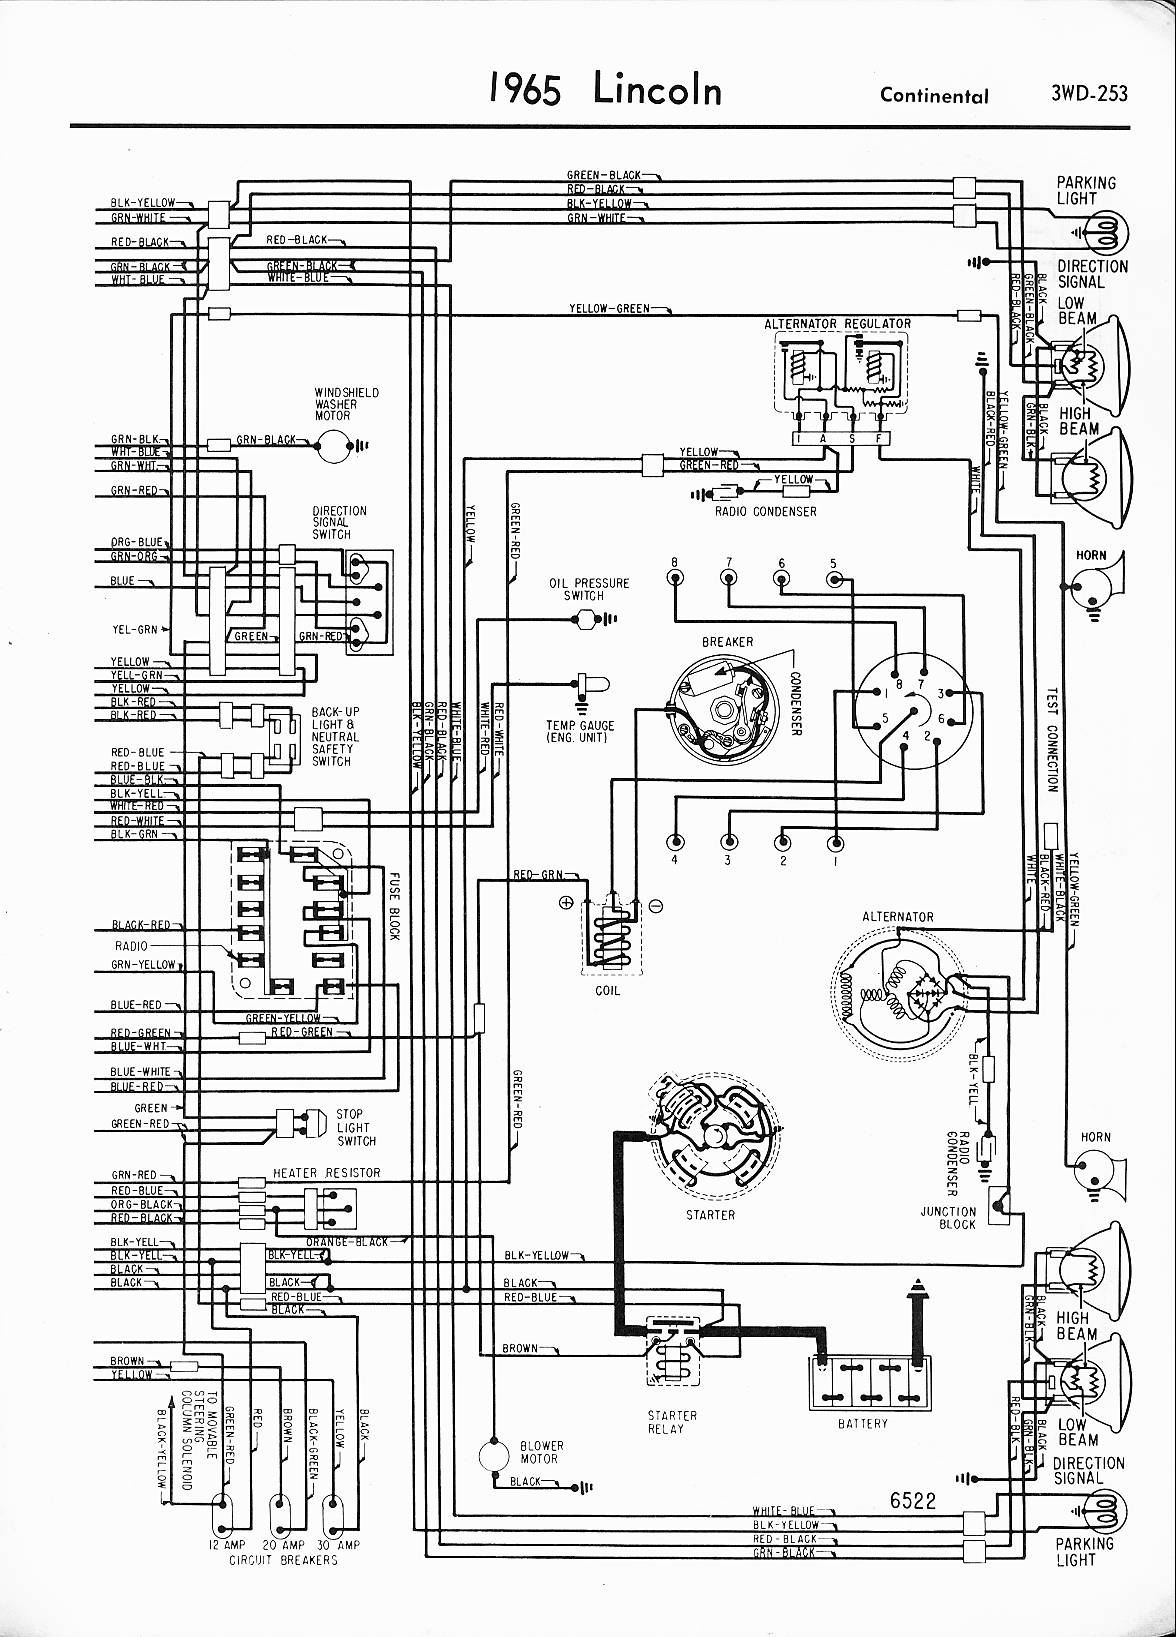 2001 lincoln navigator fuse diagram auto electrical 2007 f150 fuel filter location 2007 navigator fuel filter